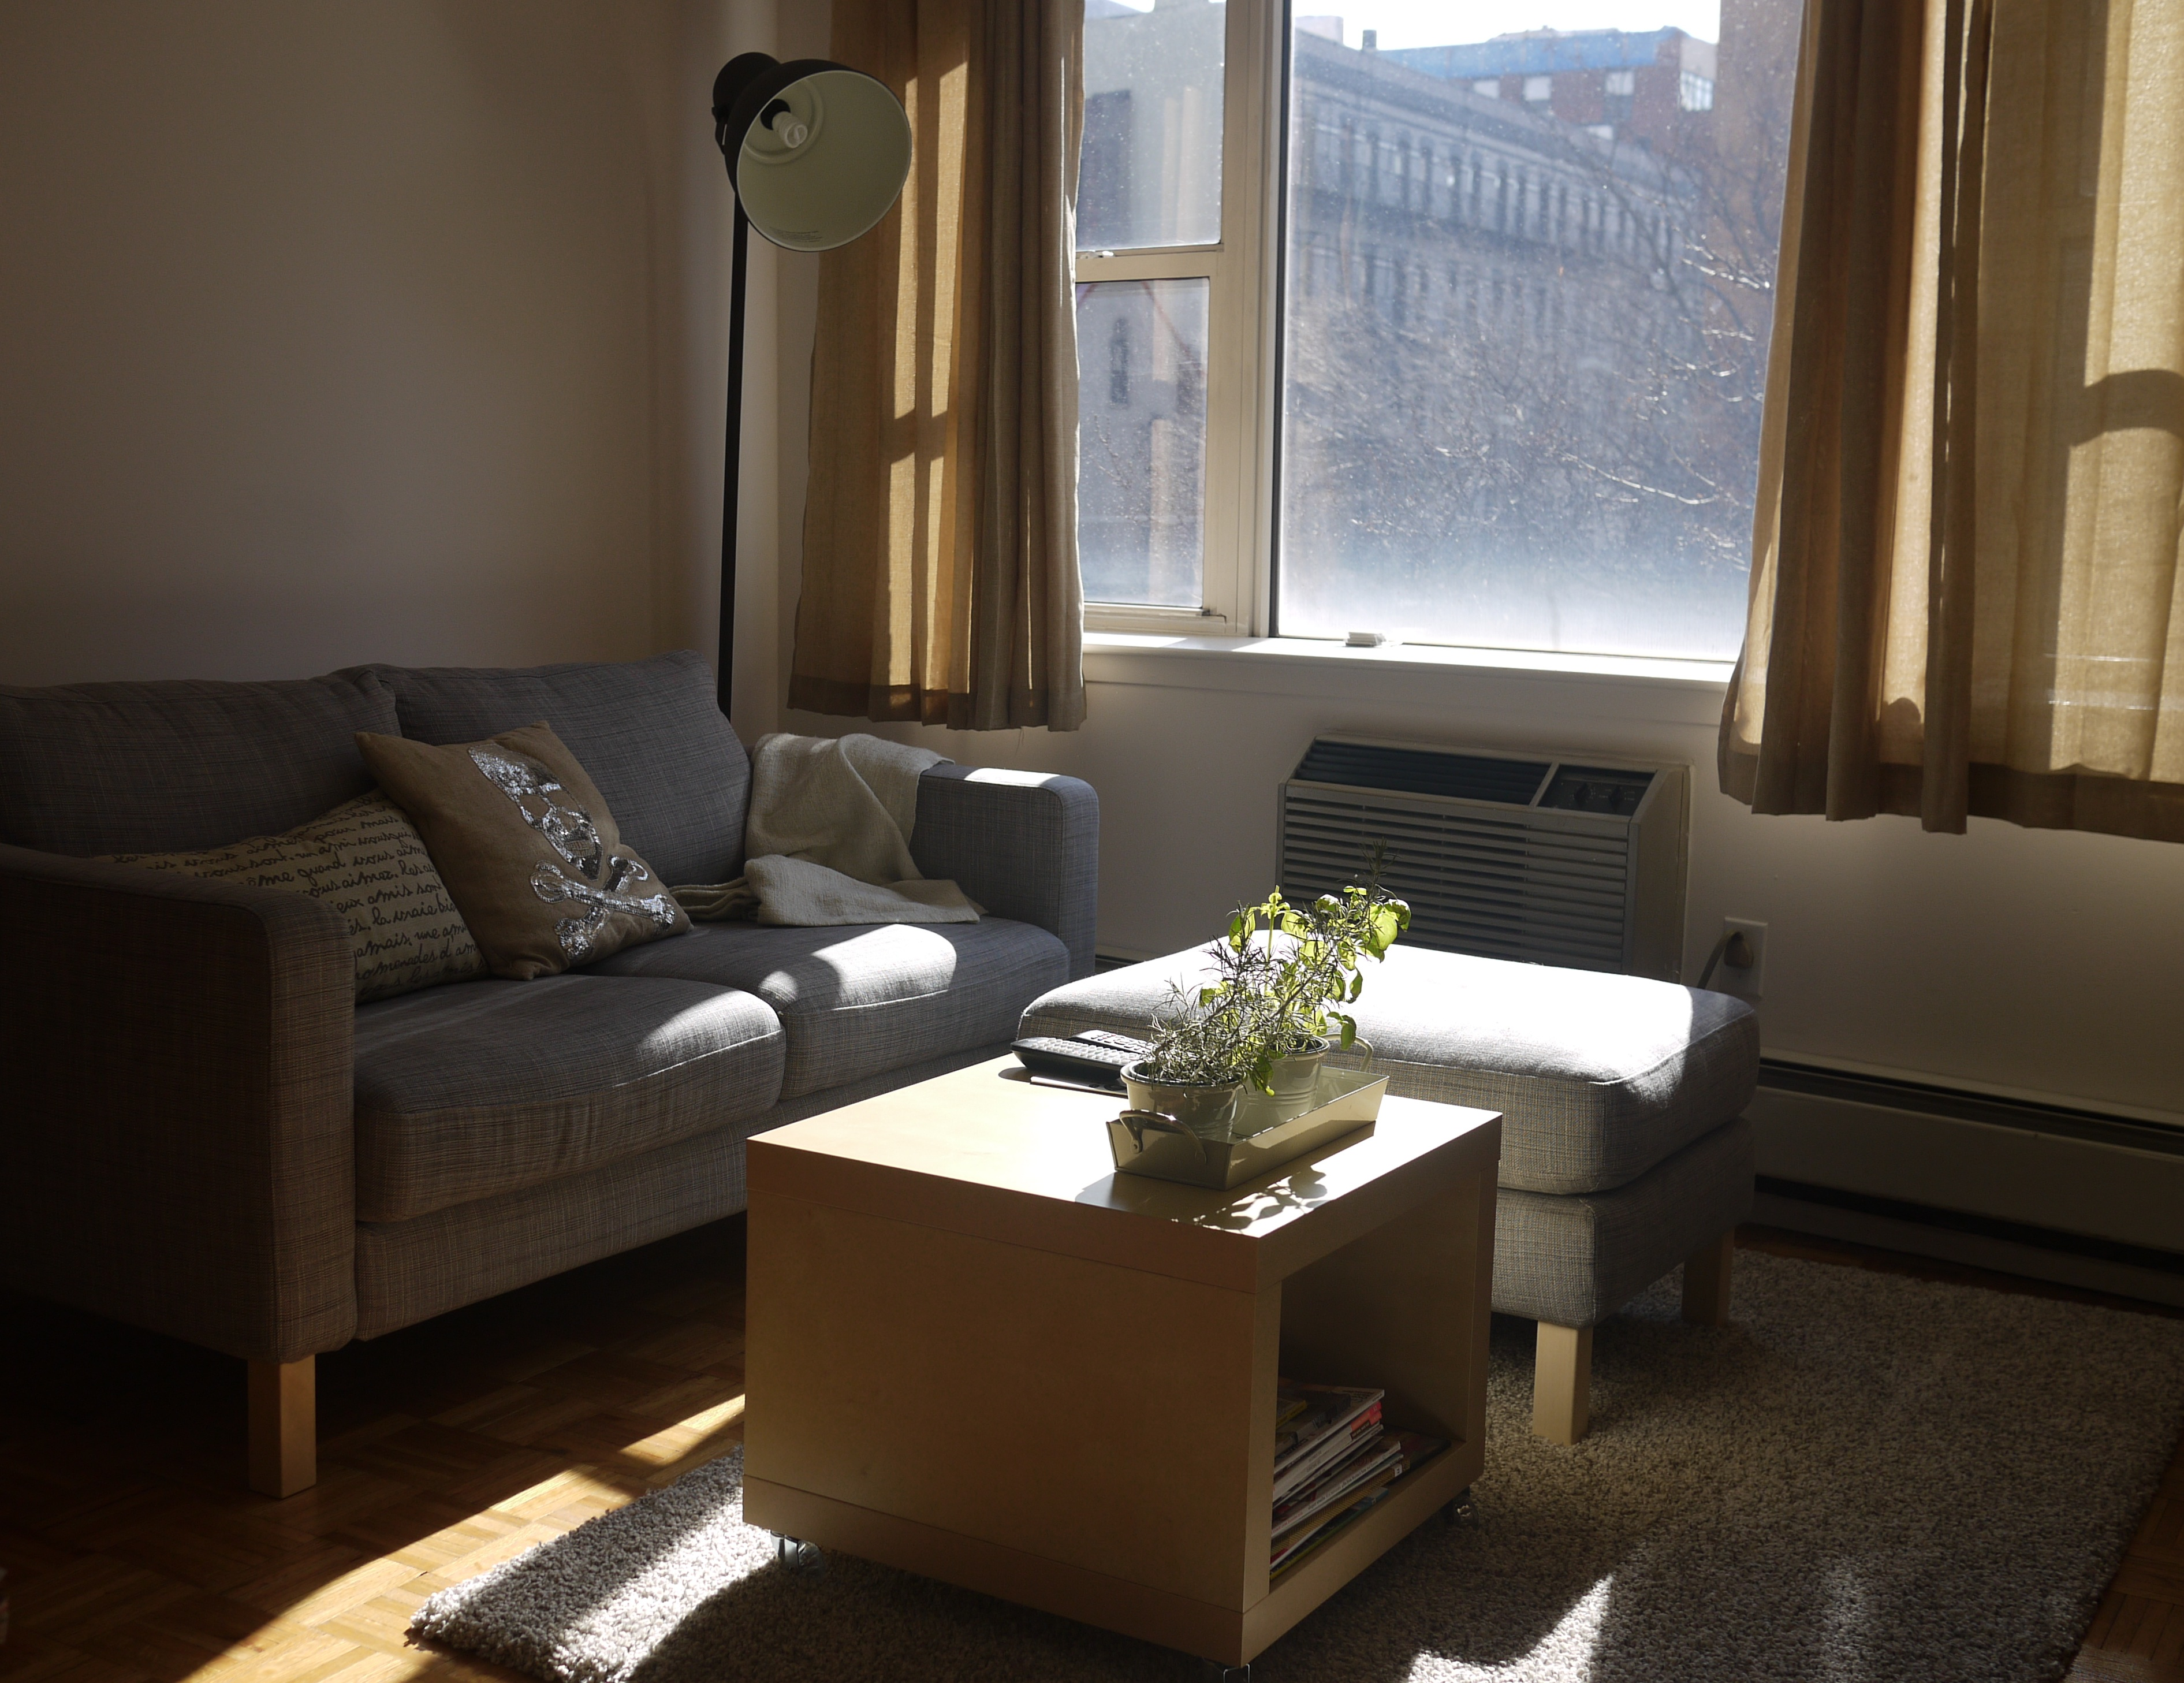 Ikea Karlstad Couch And Ottoman, Lack Side Table Part 87